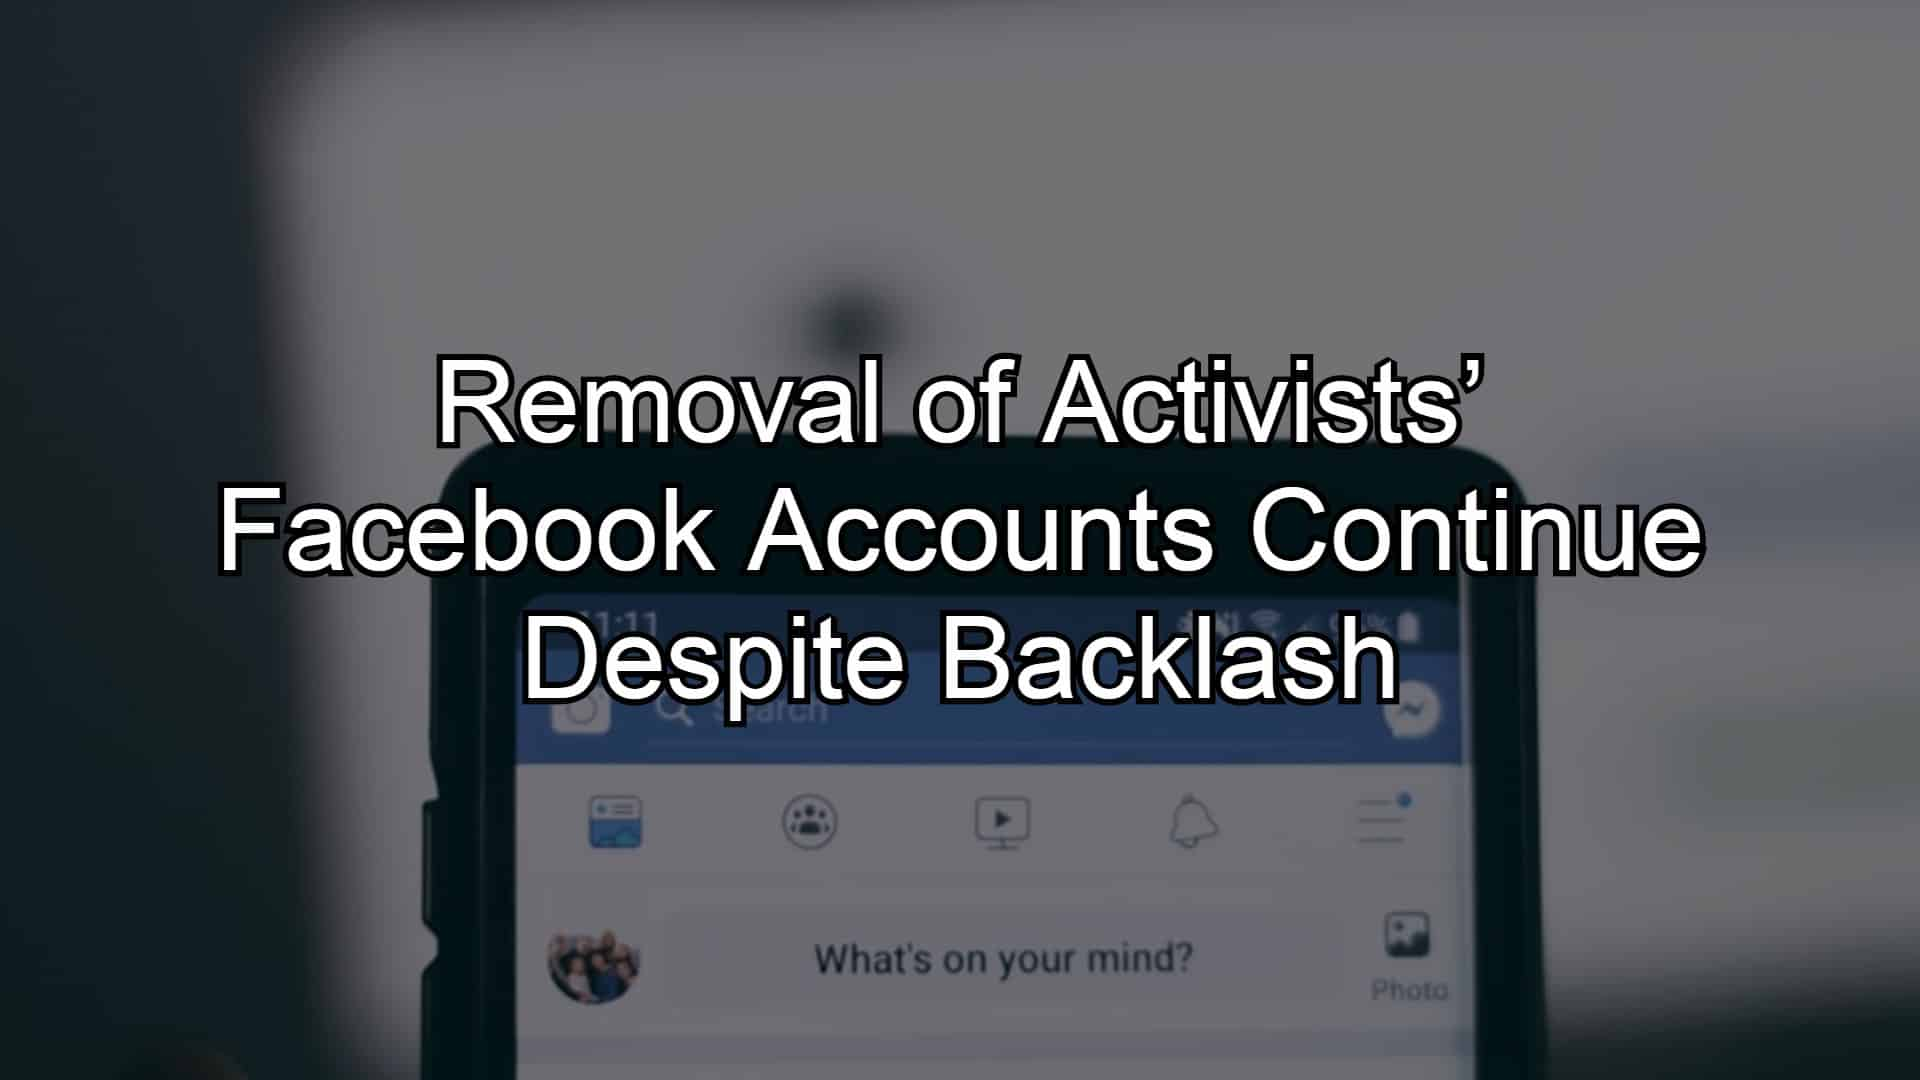 Removal of Activists' Facebook Accounts Continue Despite Backlash